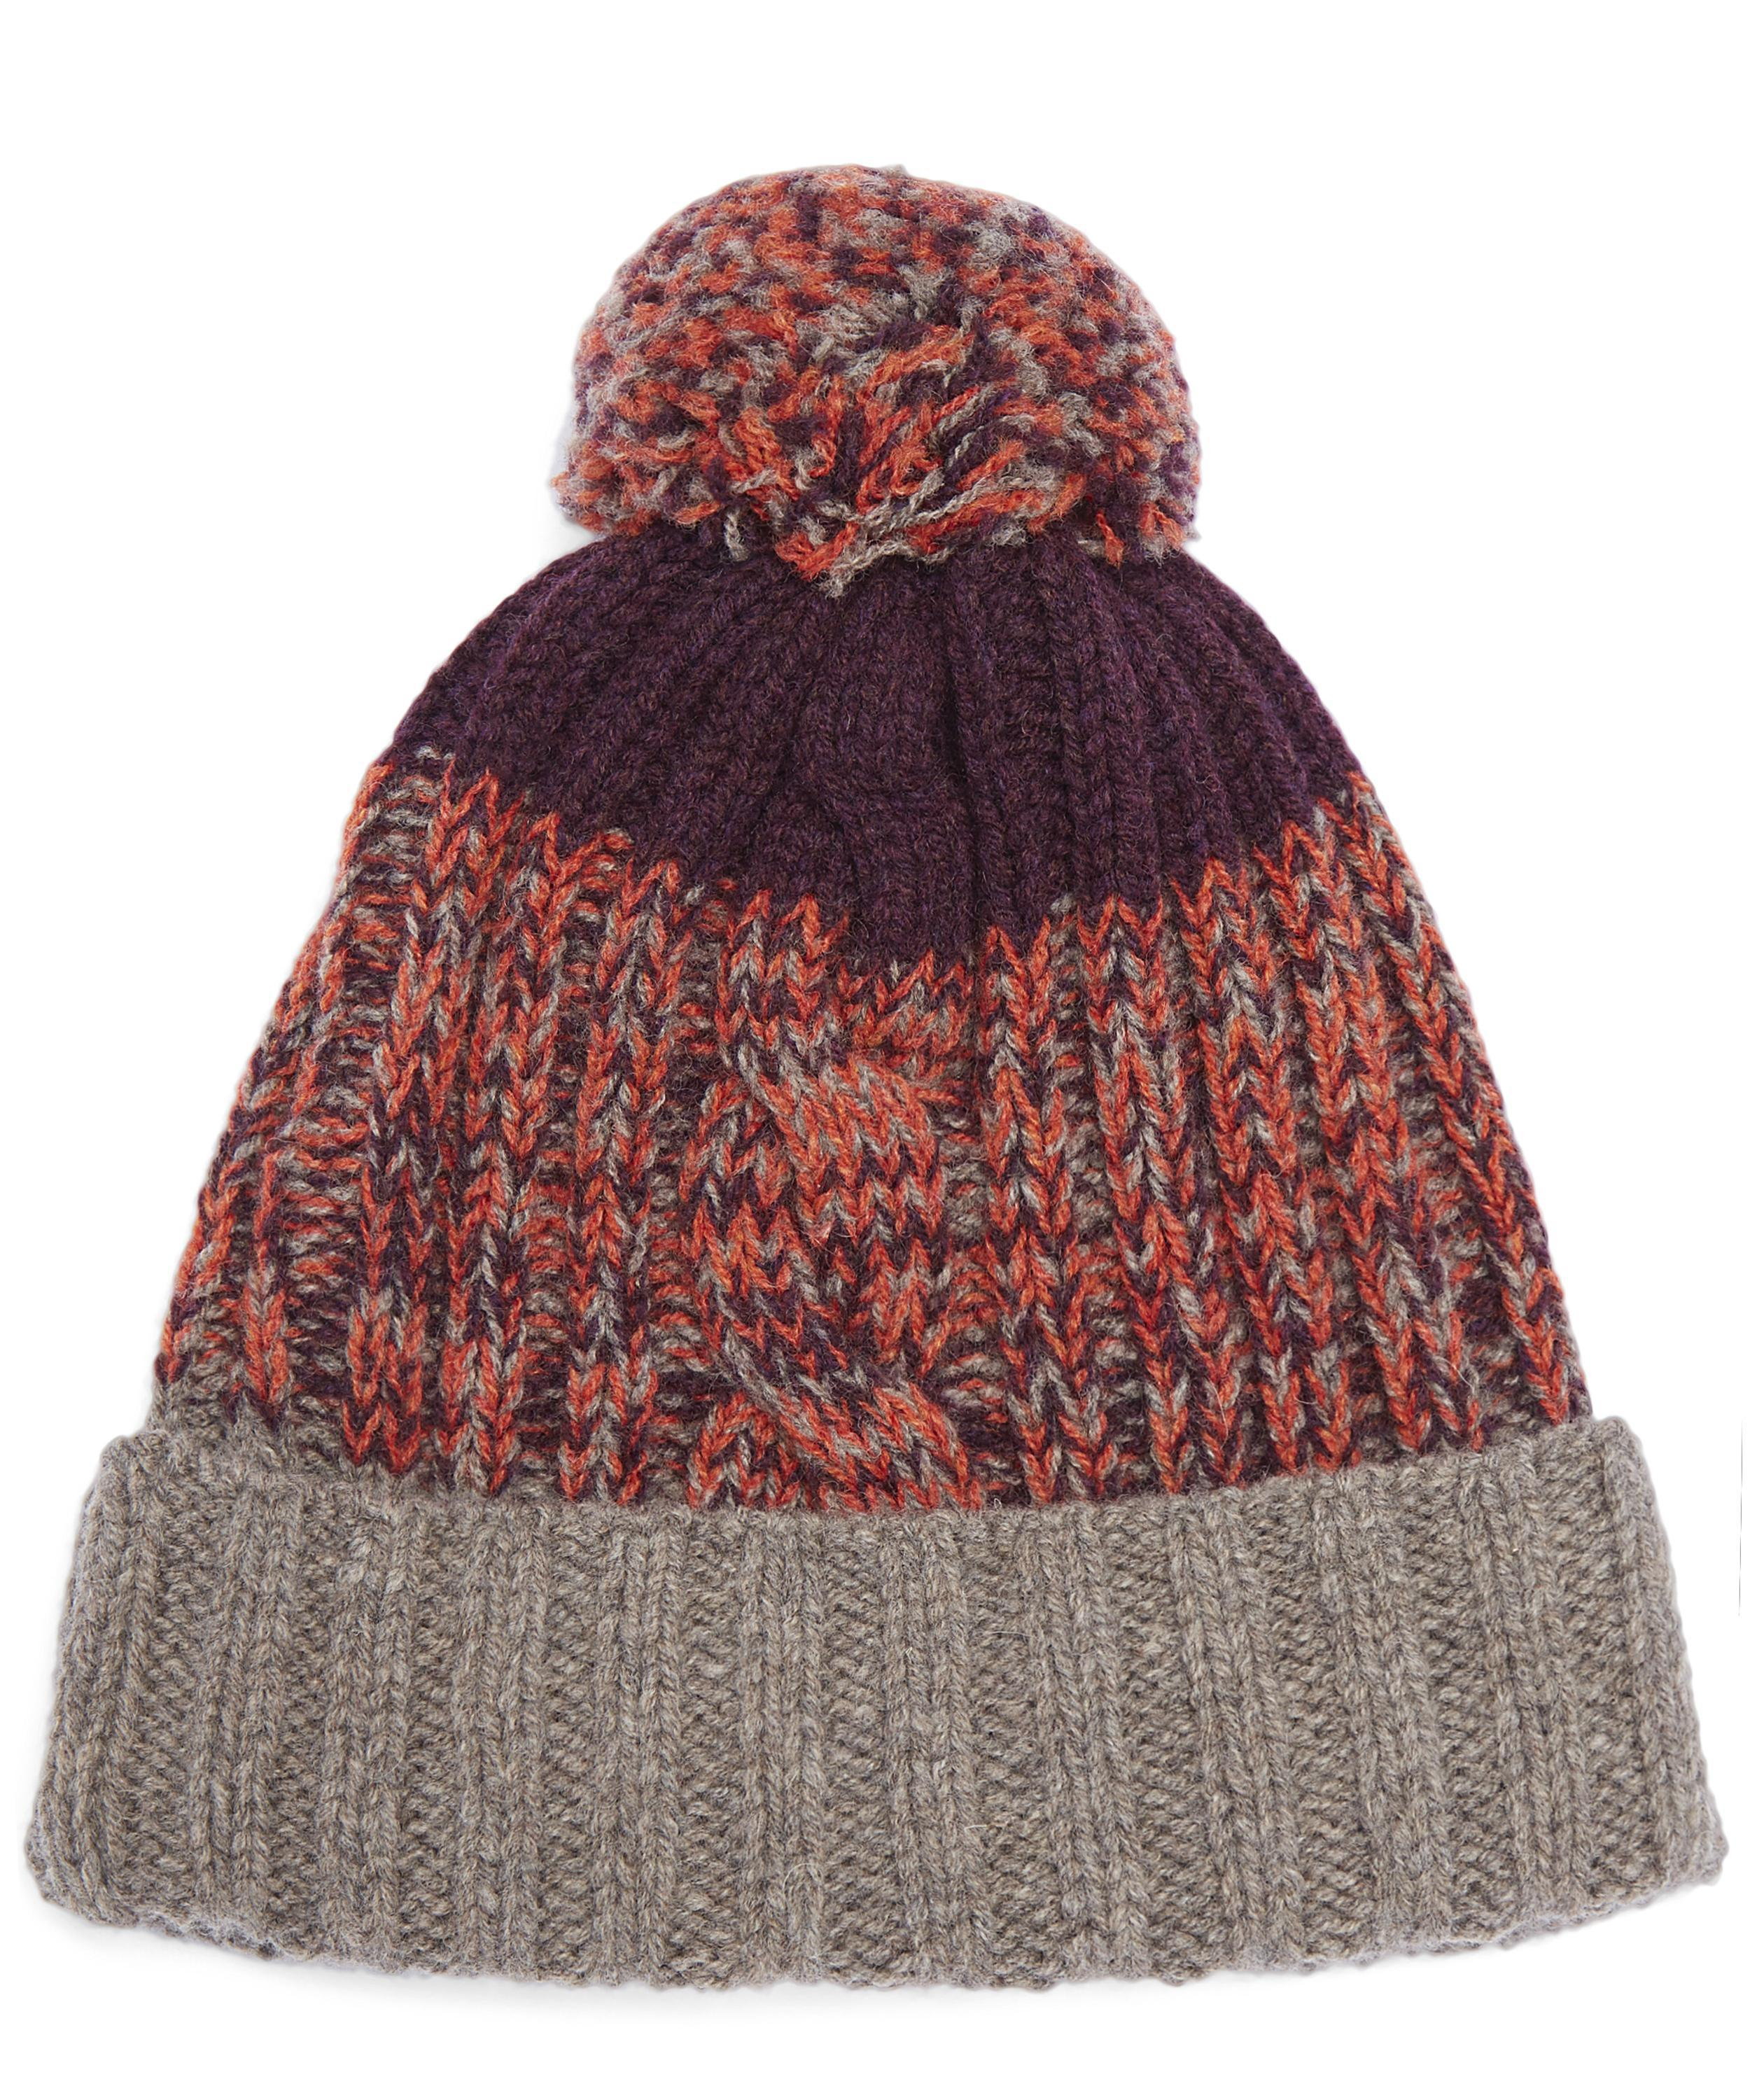 Lyst Paul Smith Lambswool Twisted Yarn Cable Knit Bobble Hat 145c5fa20dc5